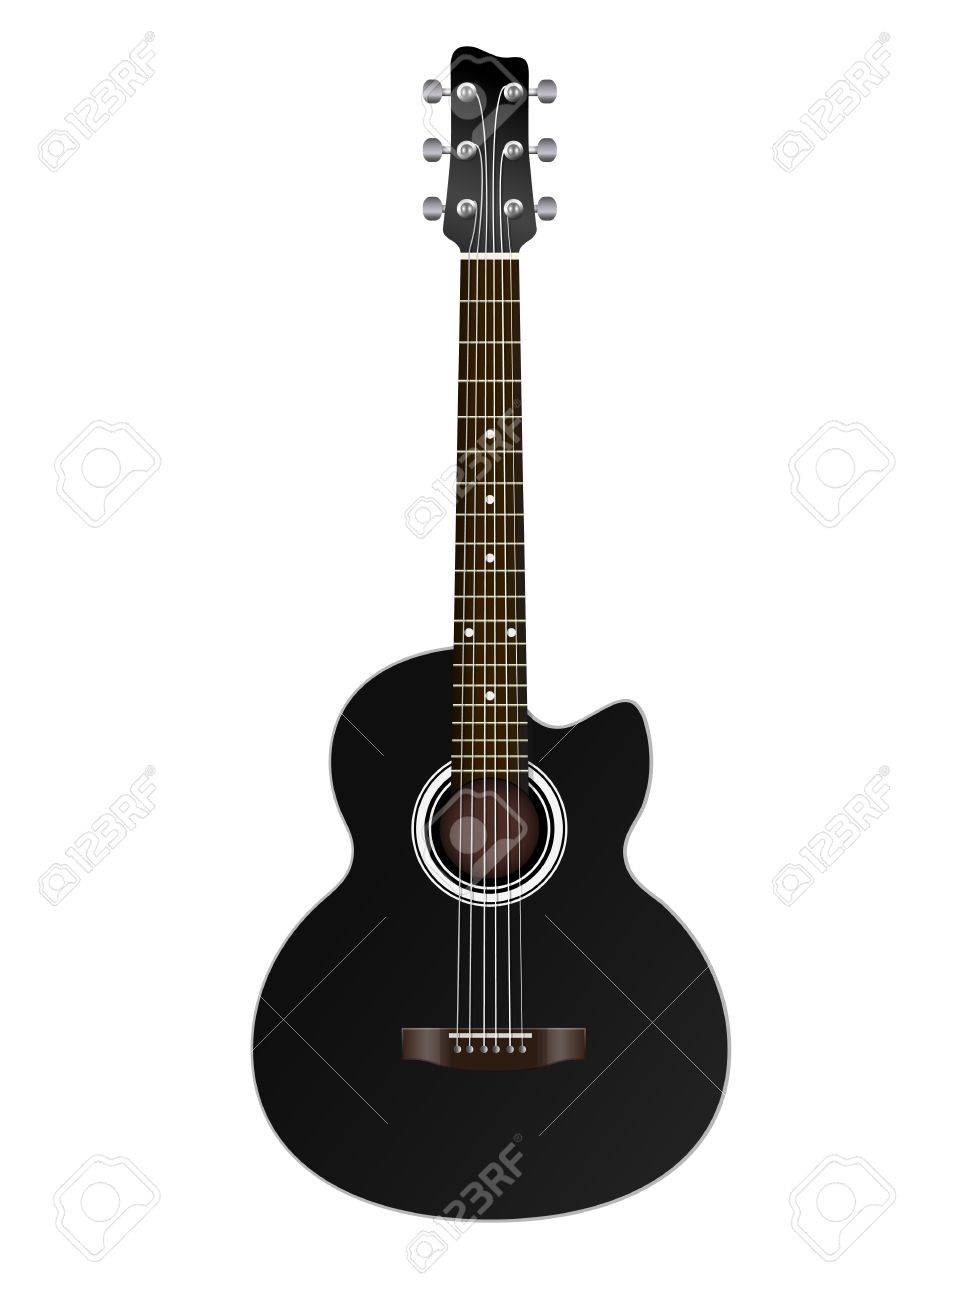 acoustic classic guitar illustration isolated on white background - 15352310